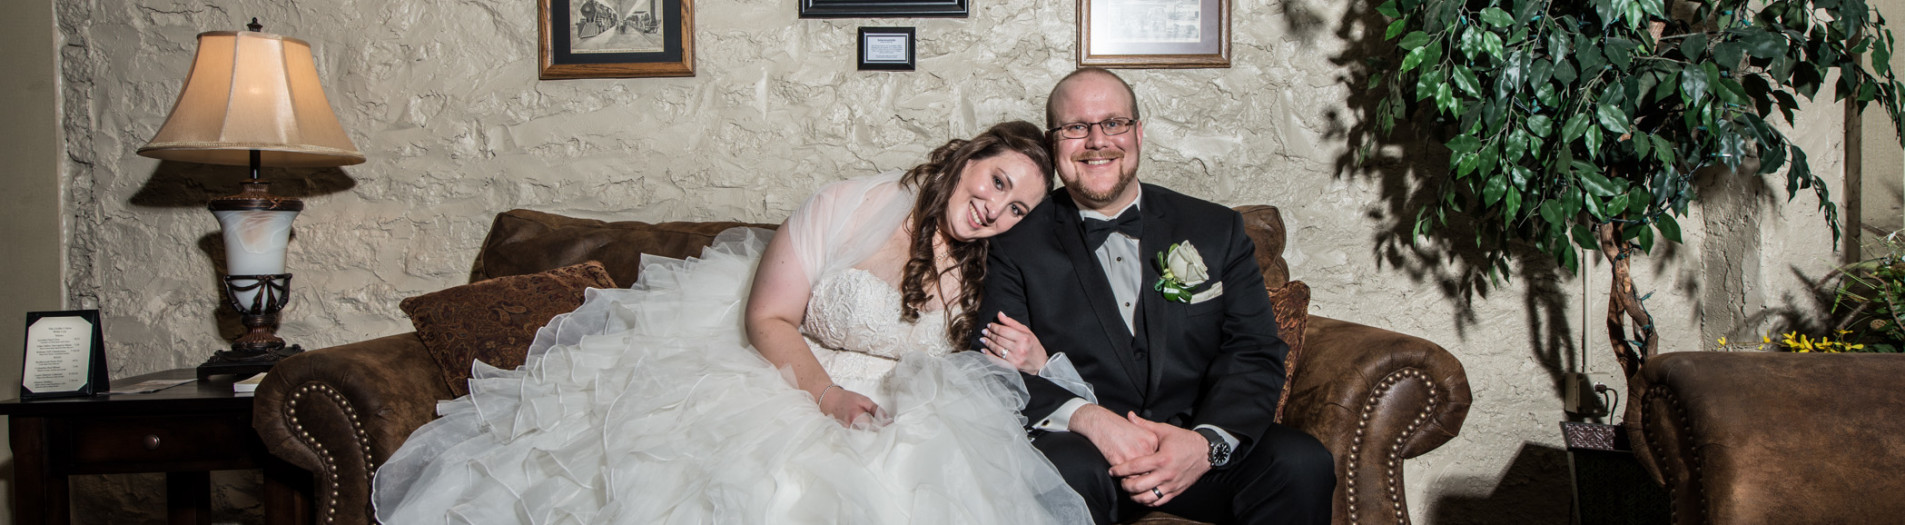 Best Wedding Photographers Chester County Pa - Natalie & George's Wedding